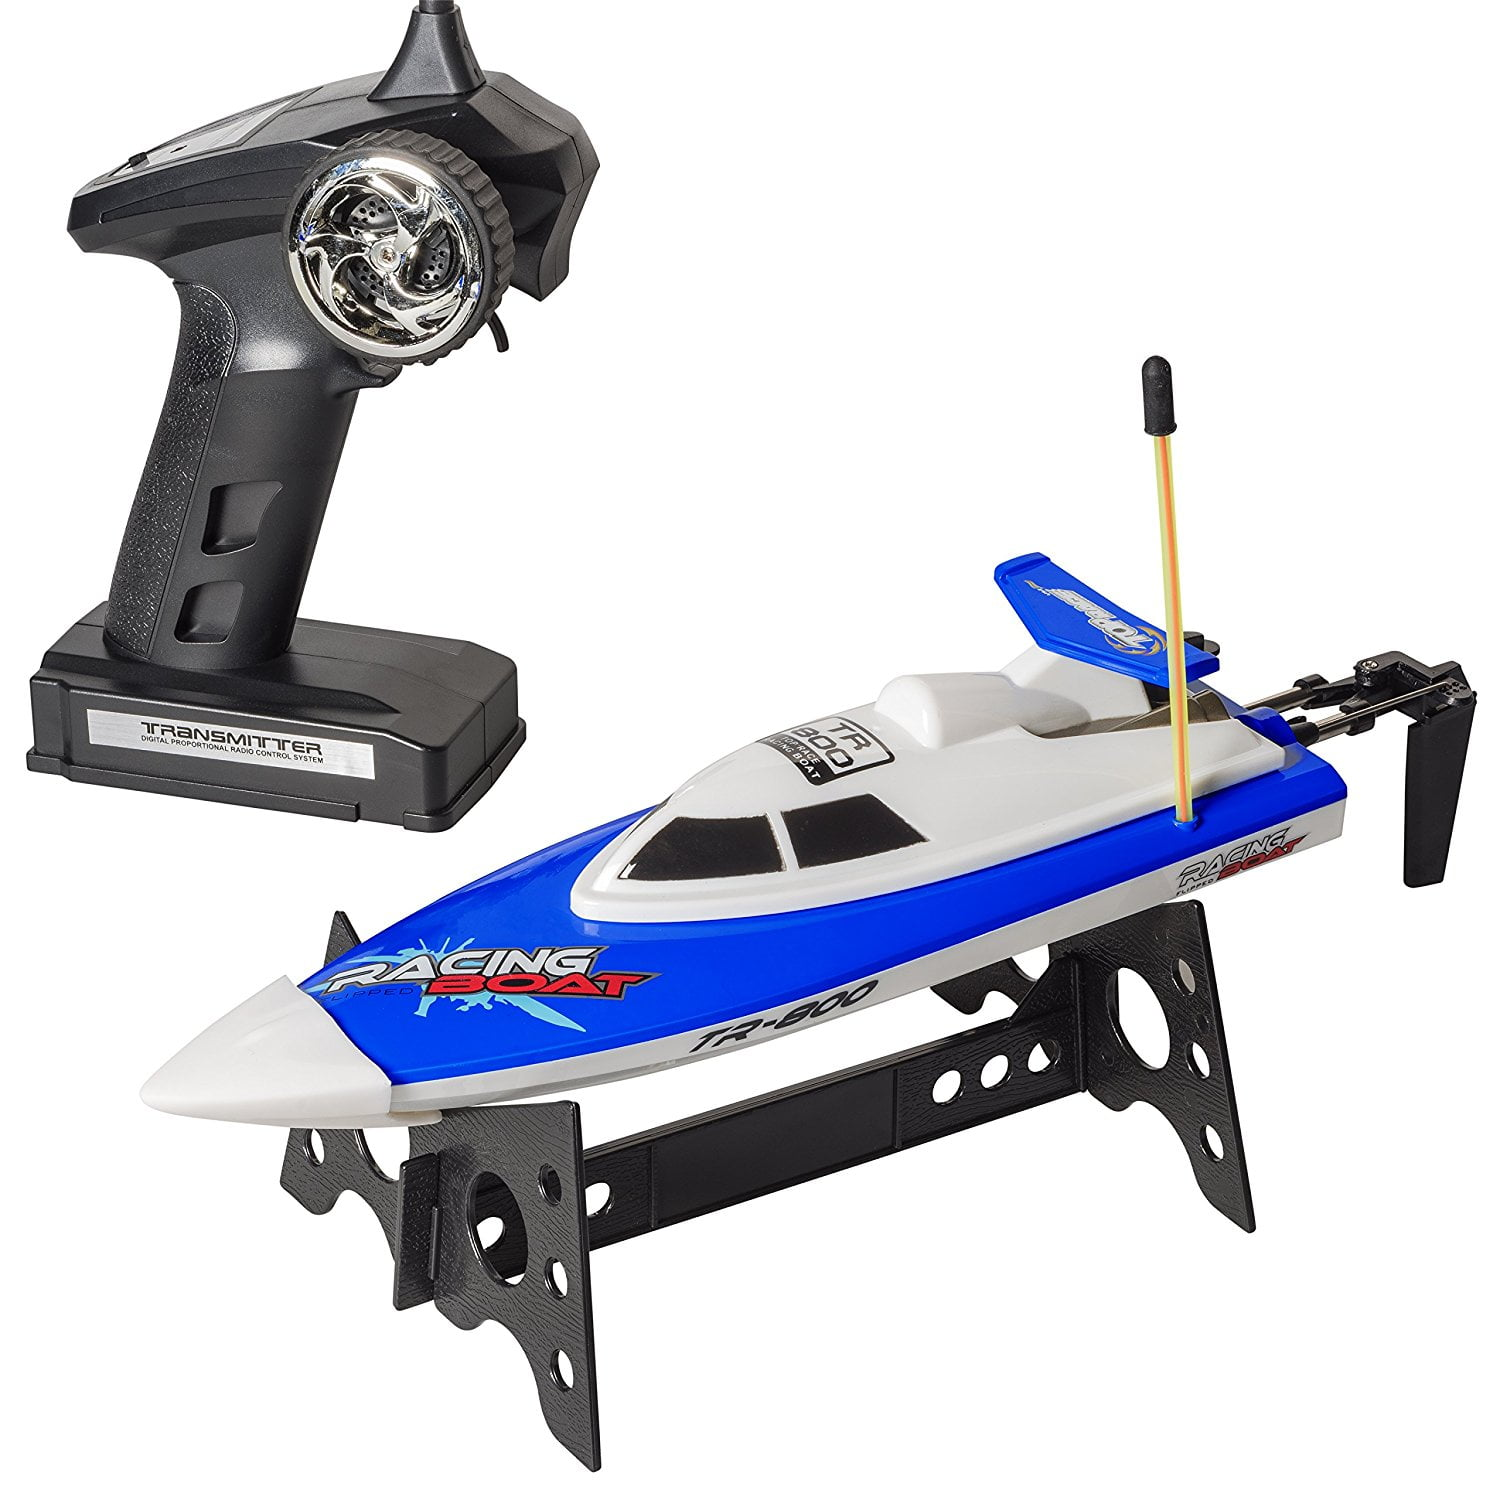 Centurylink Phone Service >> Top 10 Best Rated (Affordable) Radio Controlled Boats ...